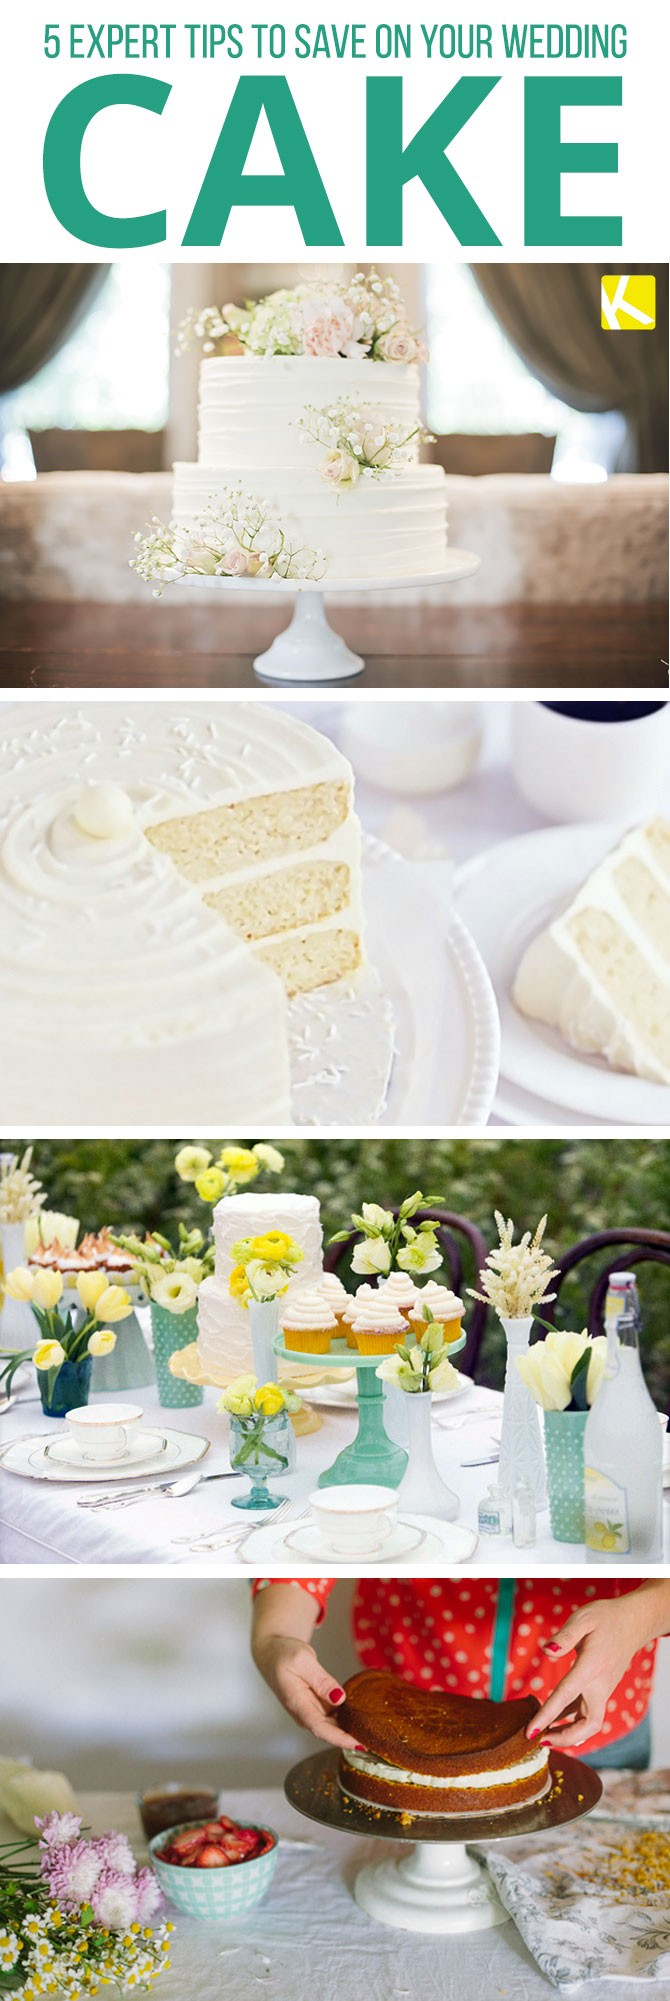 5 Expert Tips to Save on Your Wedding Cake - The Krazy Coupon Lady